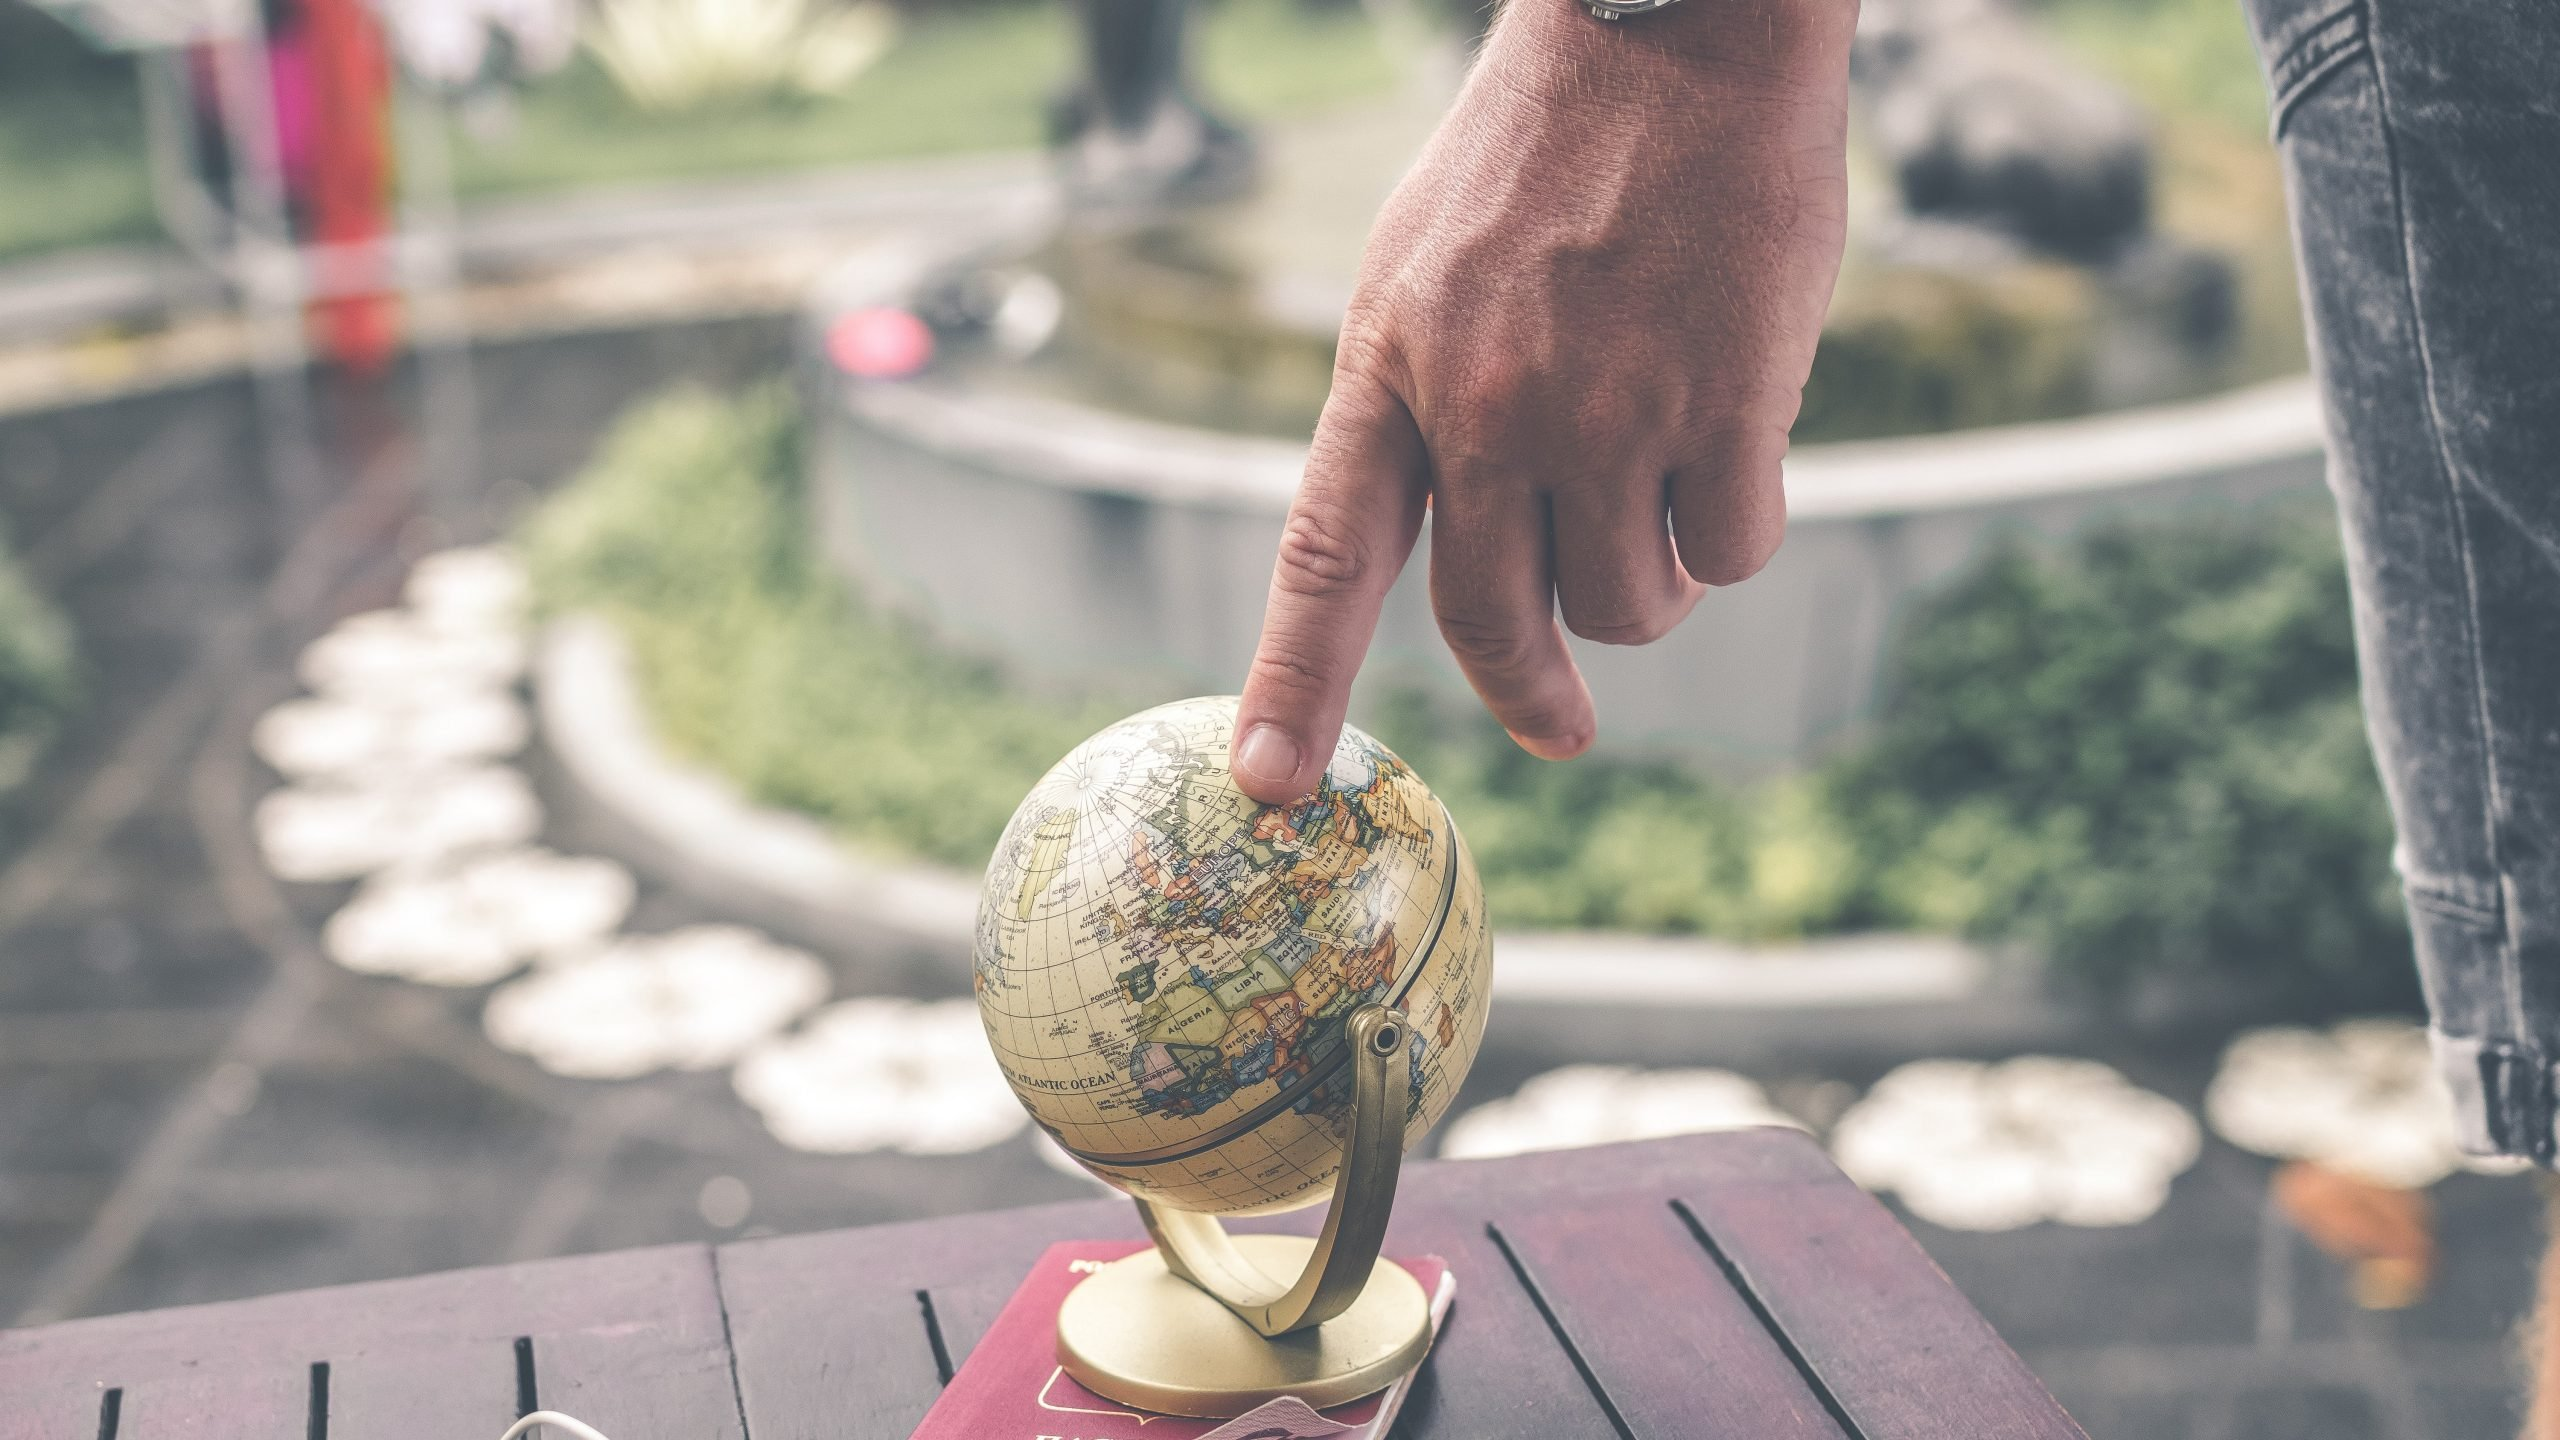 Person holding a globe scale model.